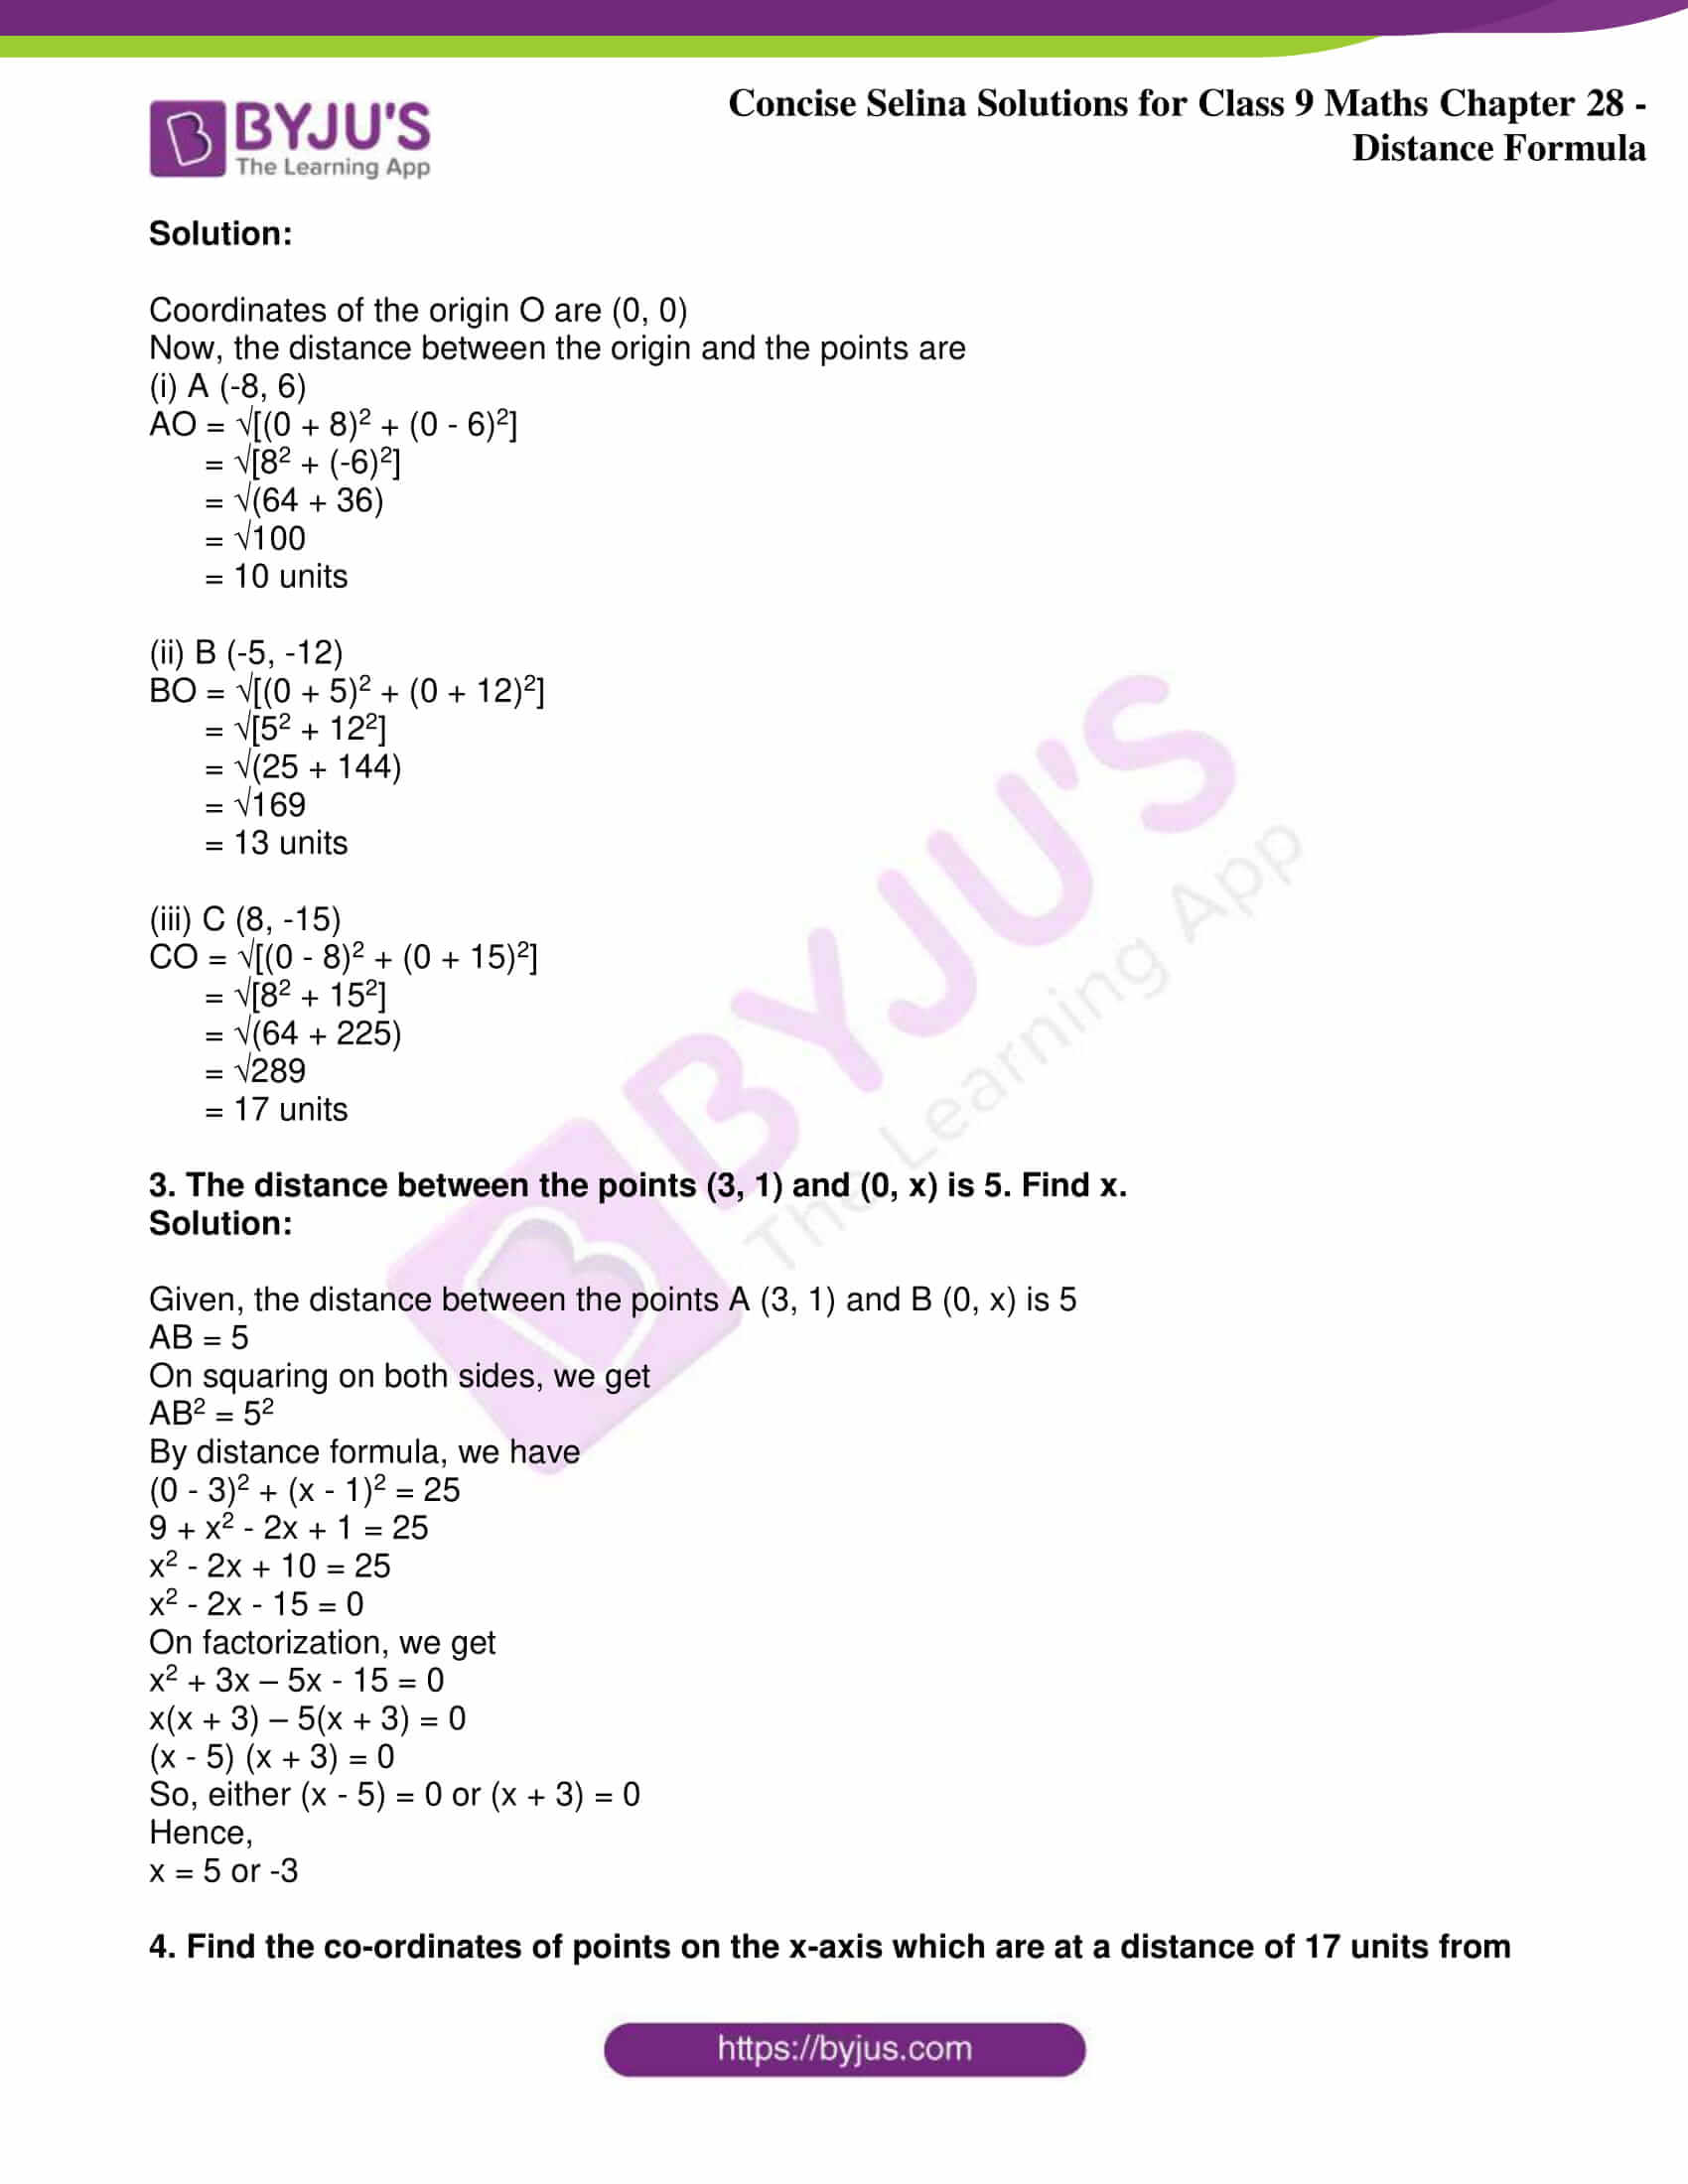 icse class 9 maths may10 selina solutions chapter 28 distance formula 02